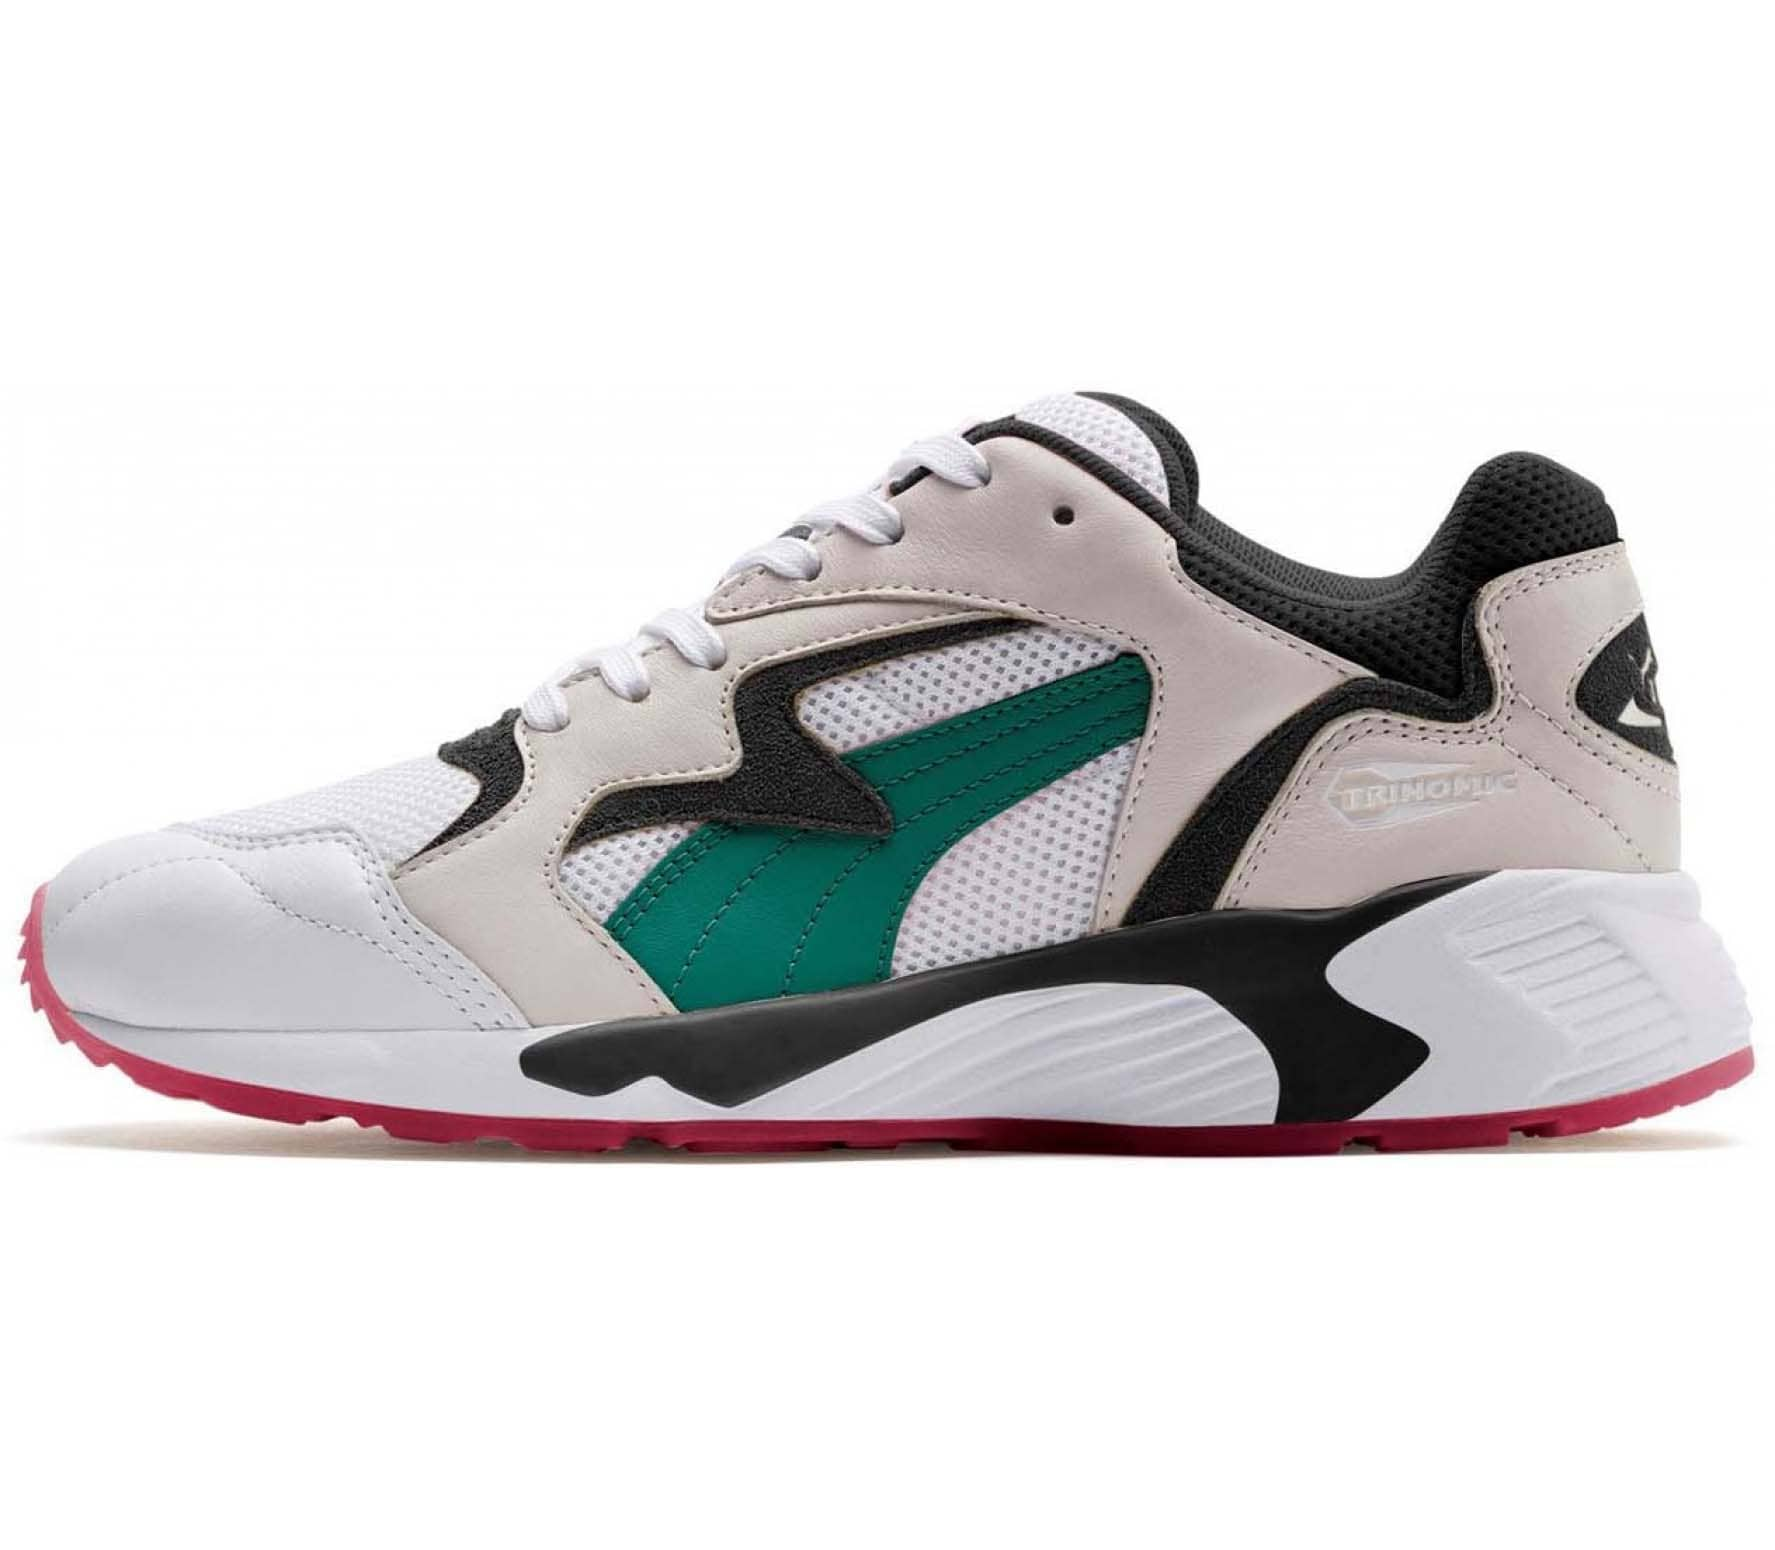 PREVAIL CLASSIC Unisex Sneakers